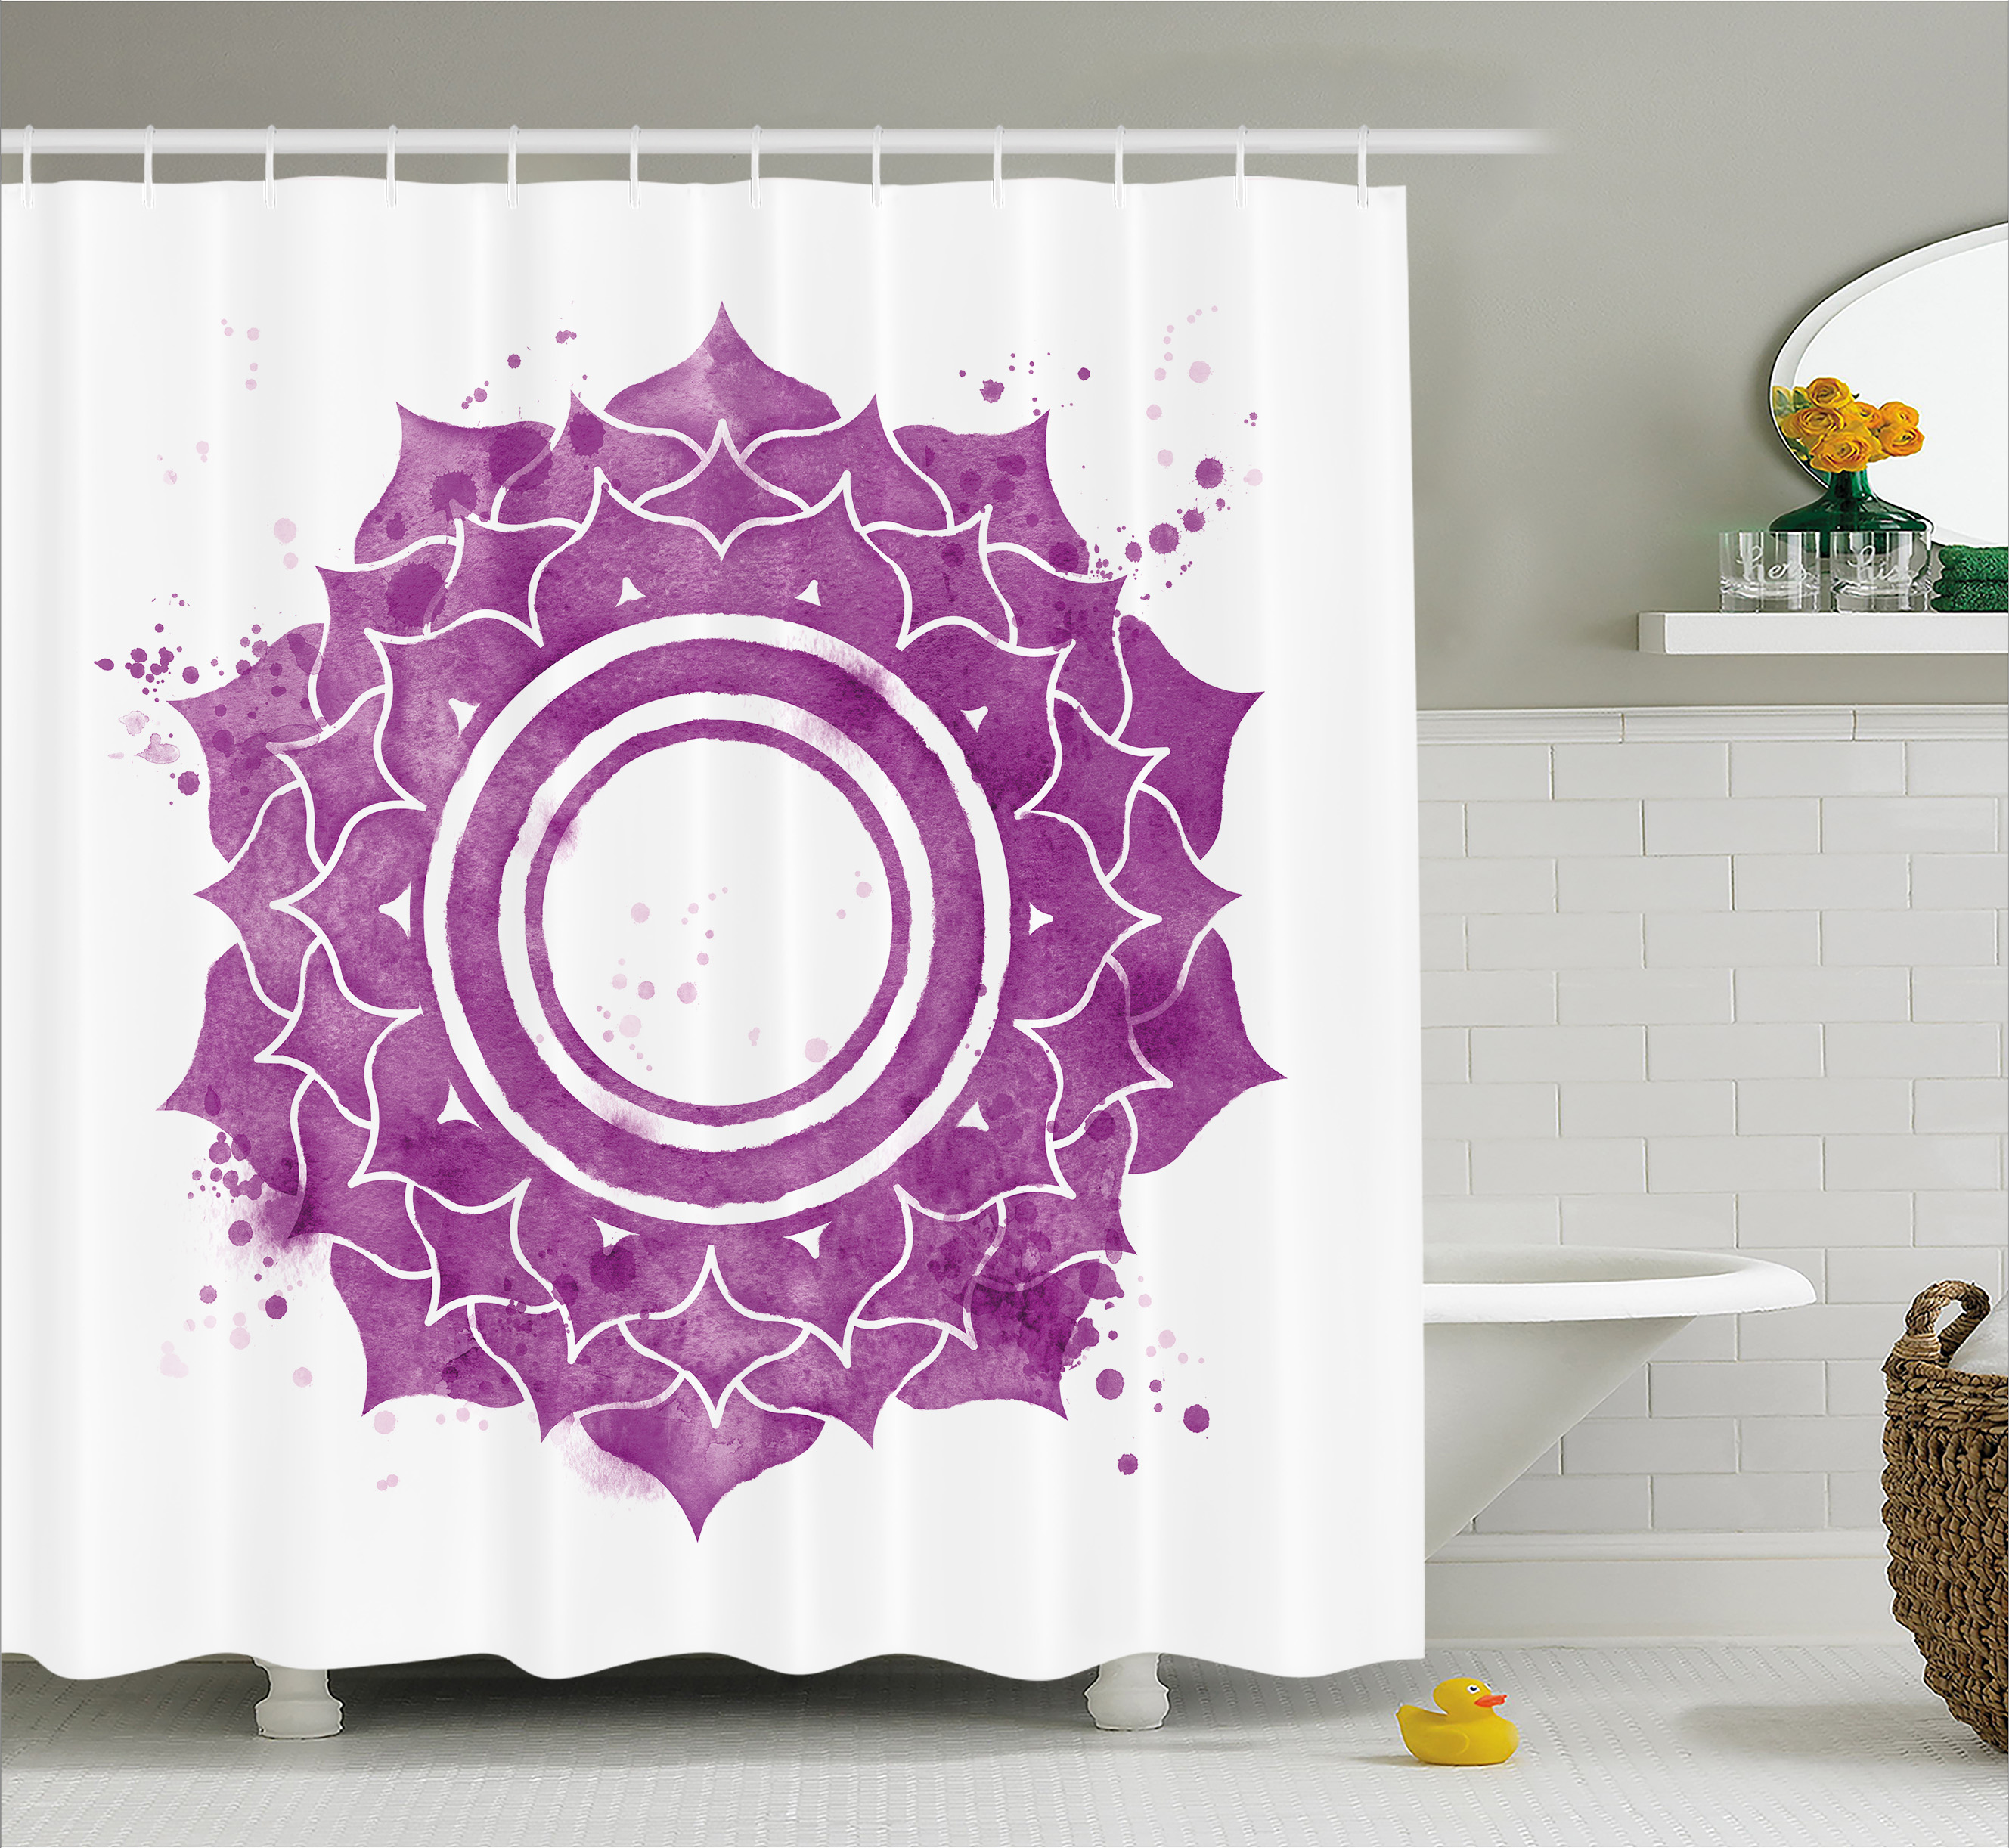 Chakra Shower Curtain Watercolor Flower With Sketch Splashes Around Universe Ethereal Artwork Print Fabric Bathroom Set Hooks Purple White